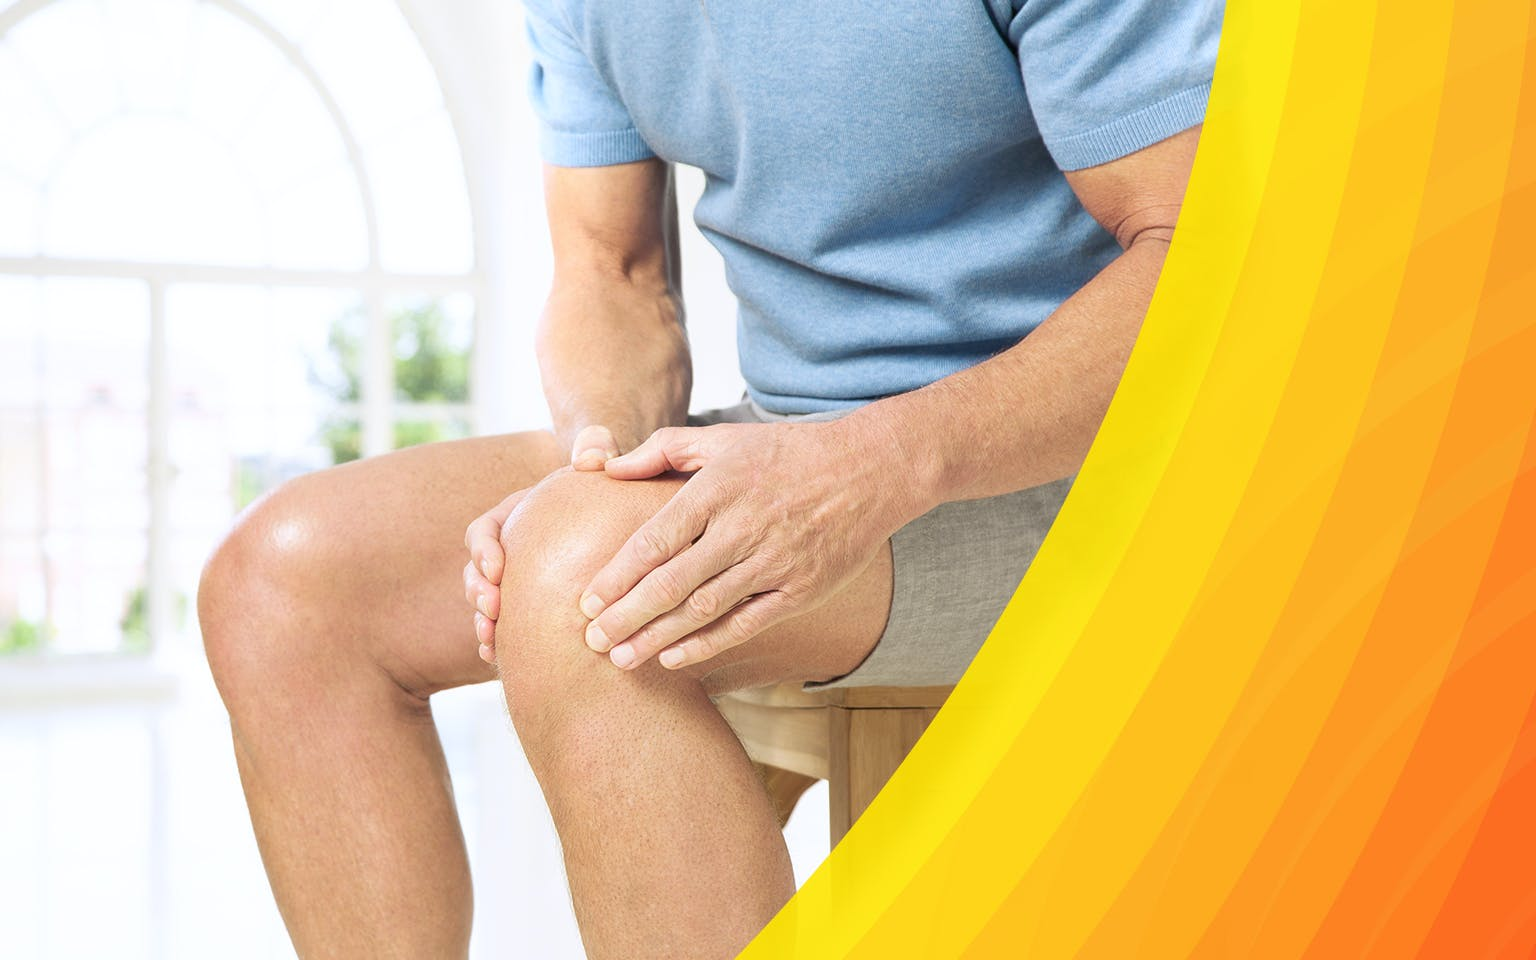 Man's hands holding a painful knee